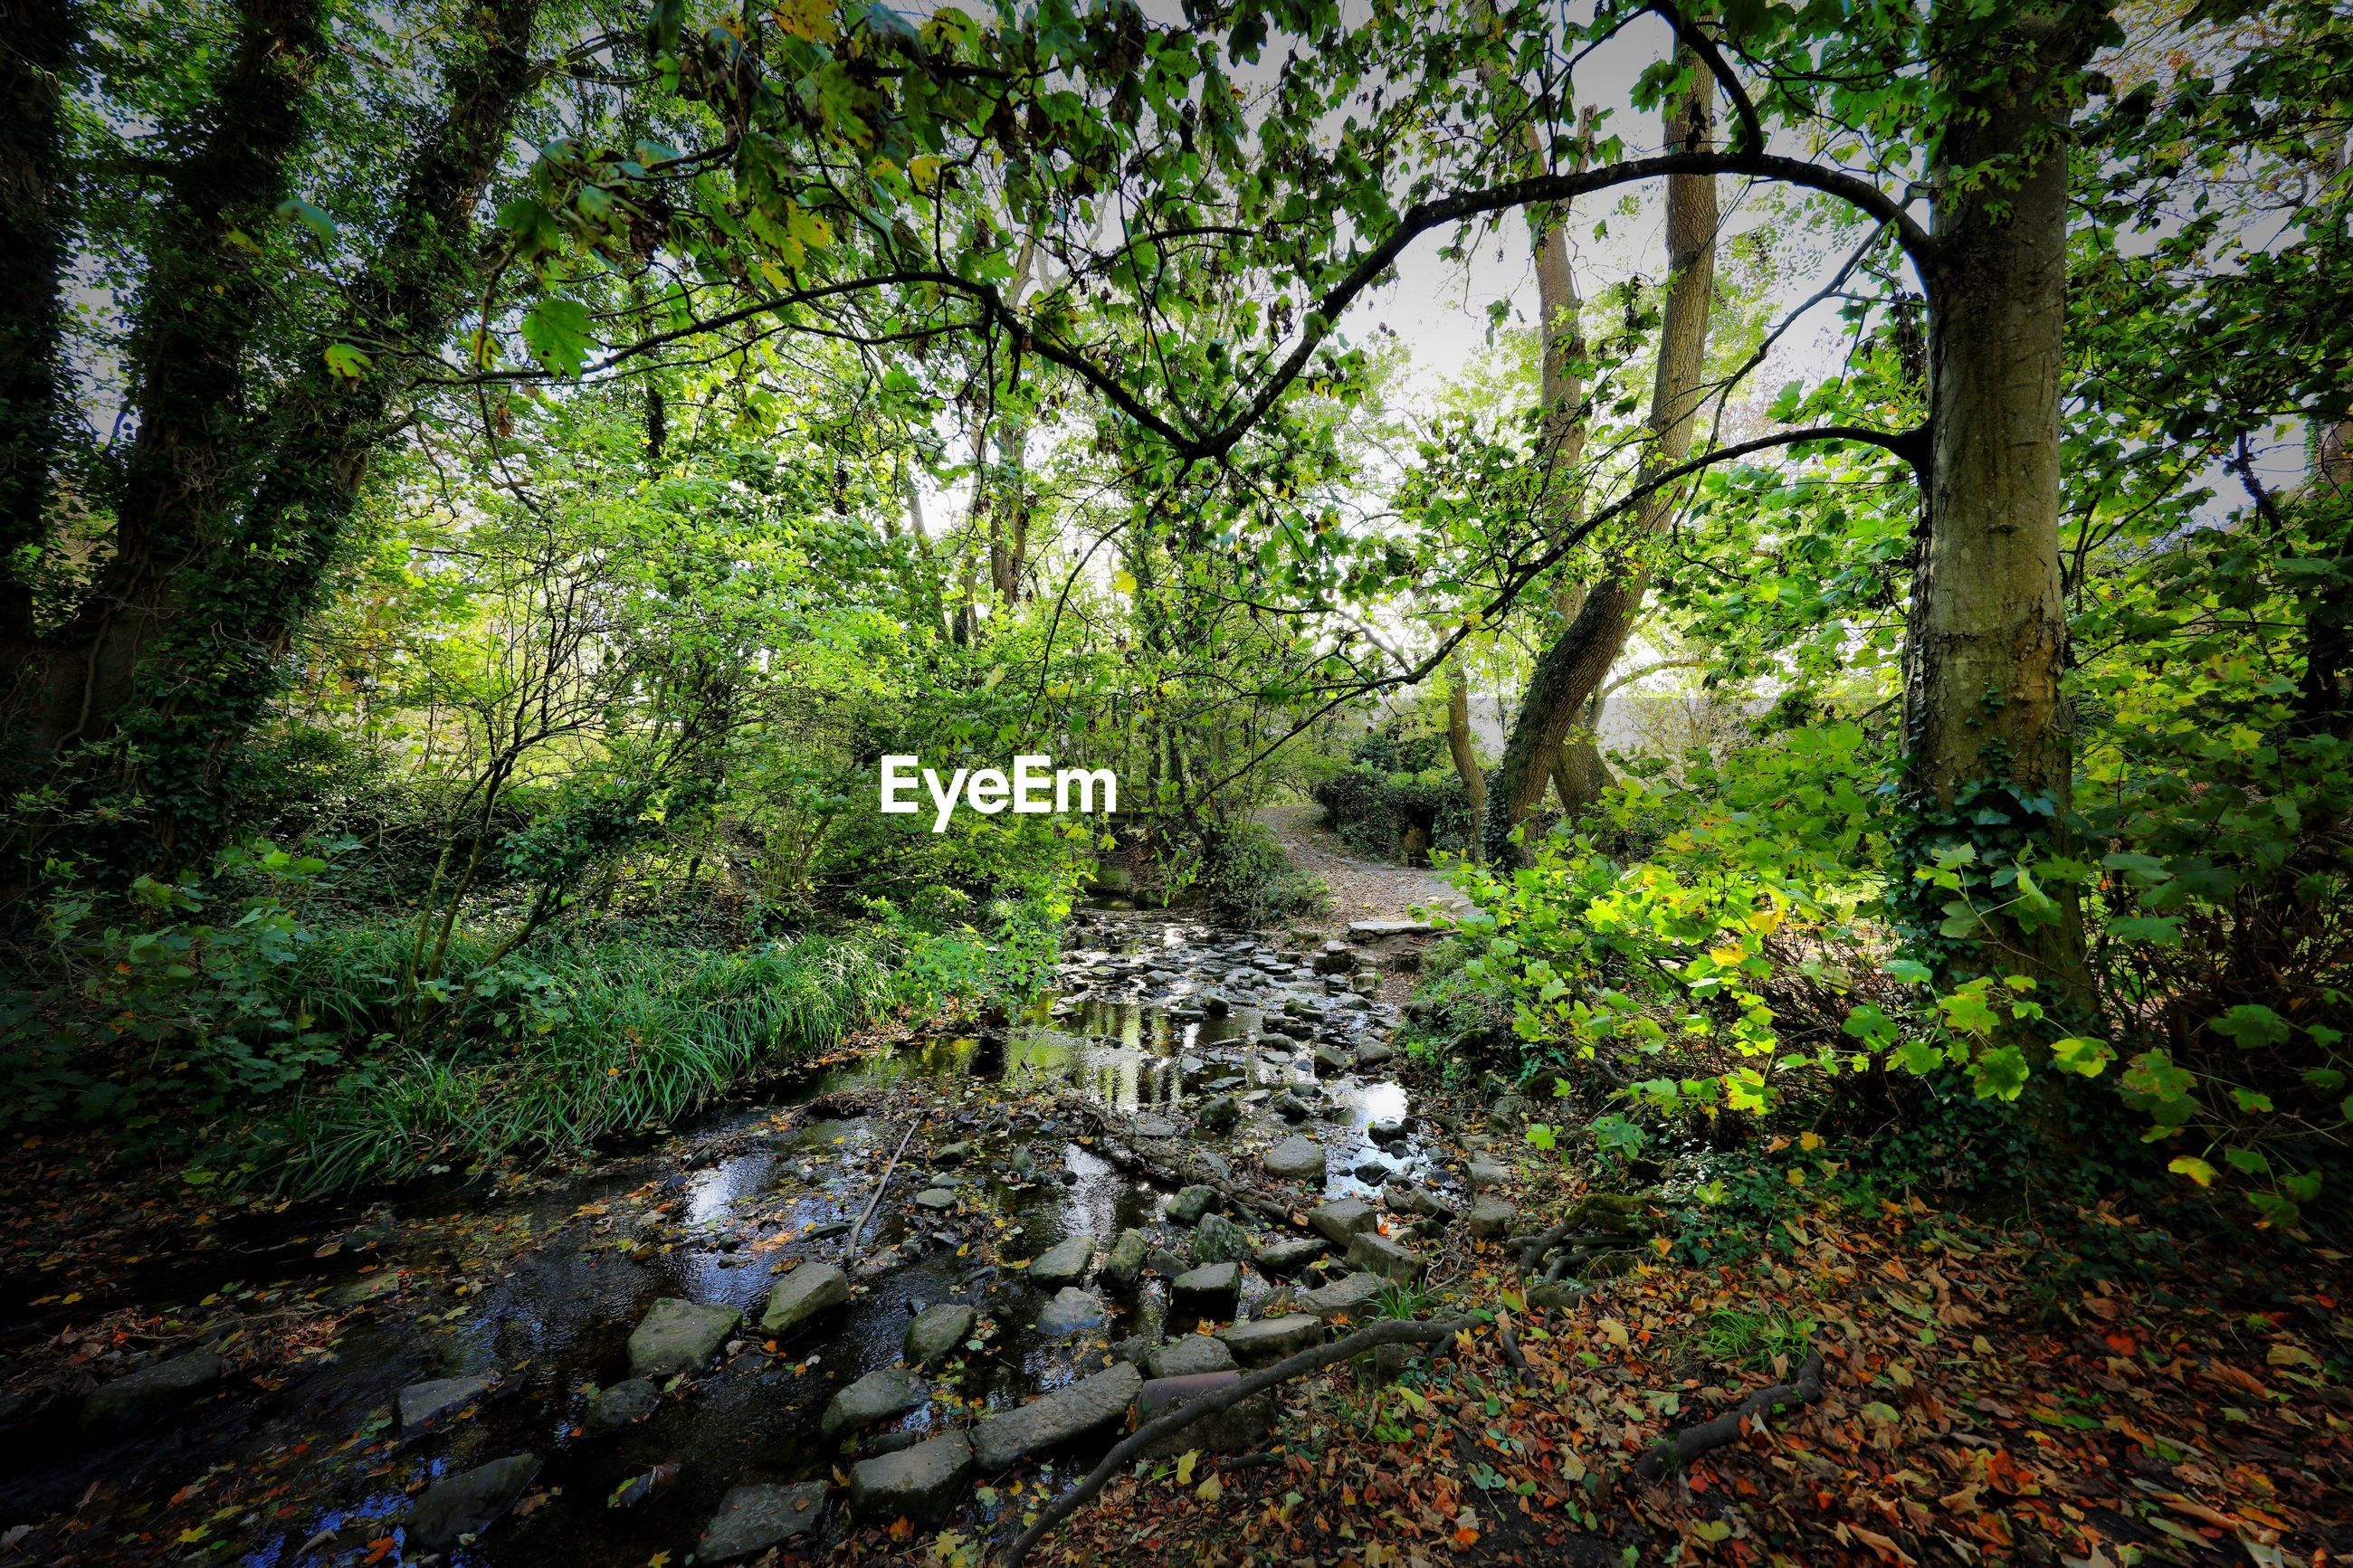 STREAM FLOWING THROUGH TREES IN FOREST